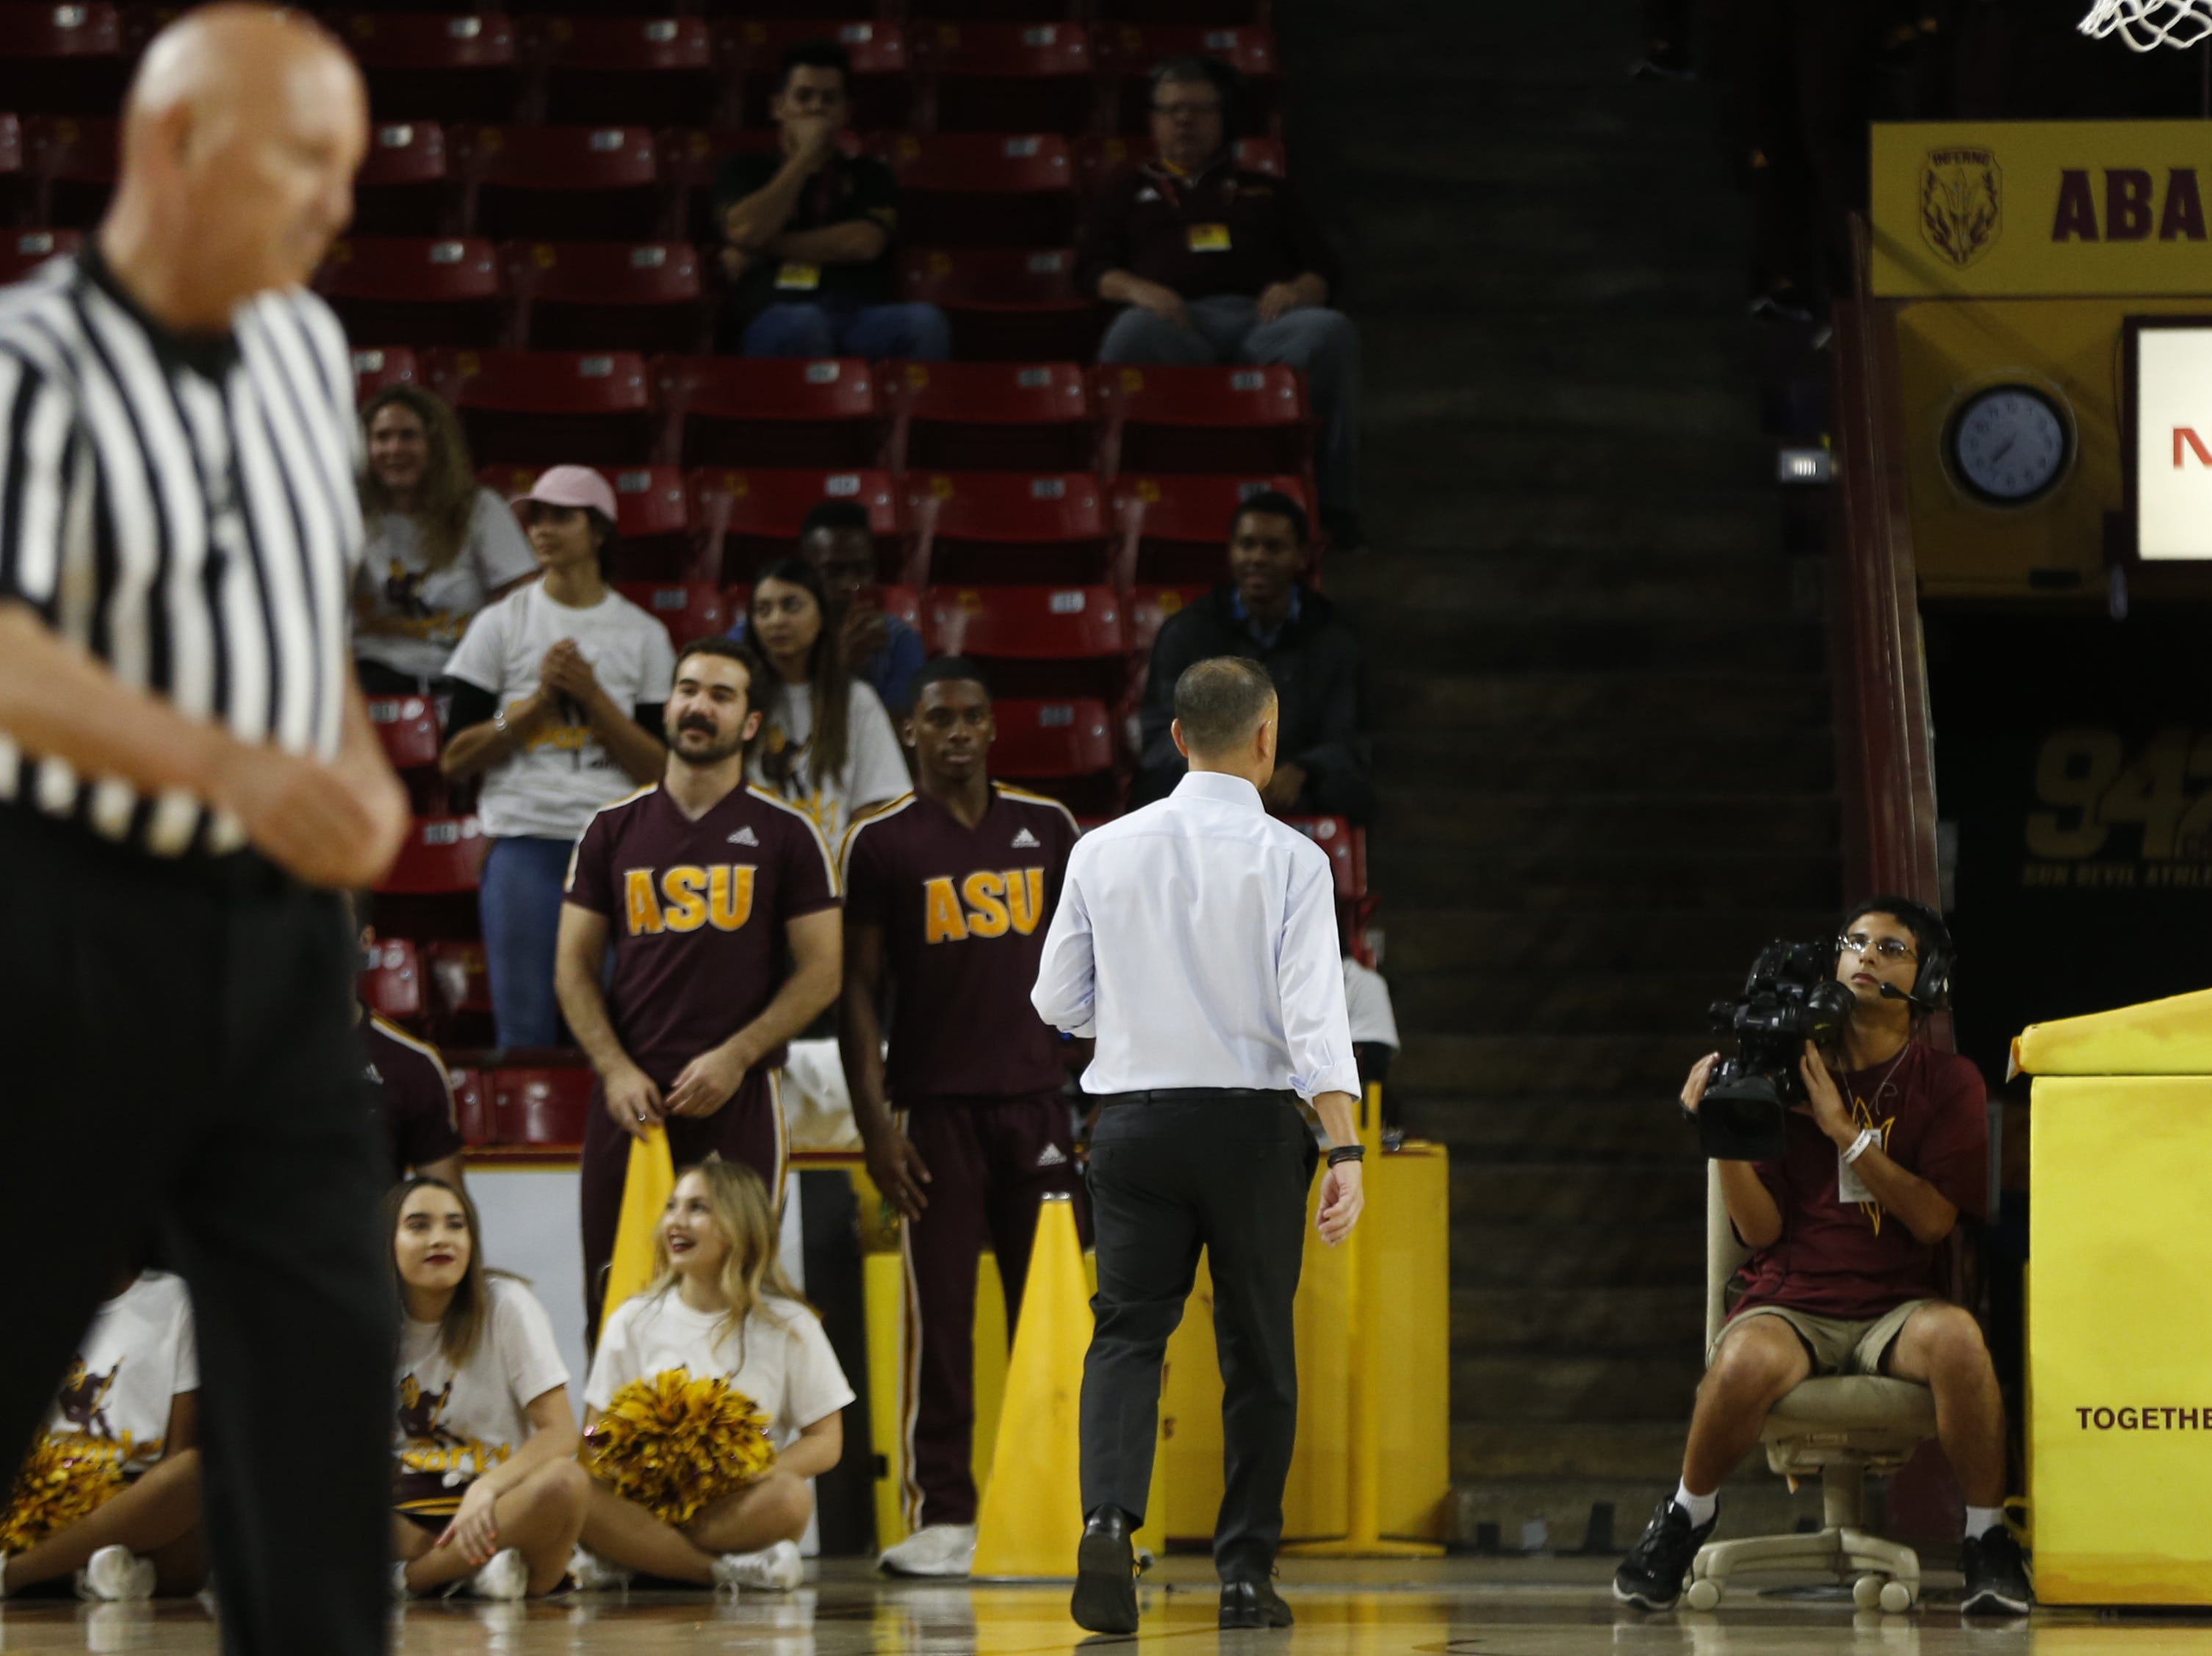 Oregon State's head coach Scott Rueck walks off the court after being called for two technical fouls against ASU during the second half at Wells Fargo Arena in Tempe, Ariz. on March 1, 2019.